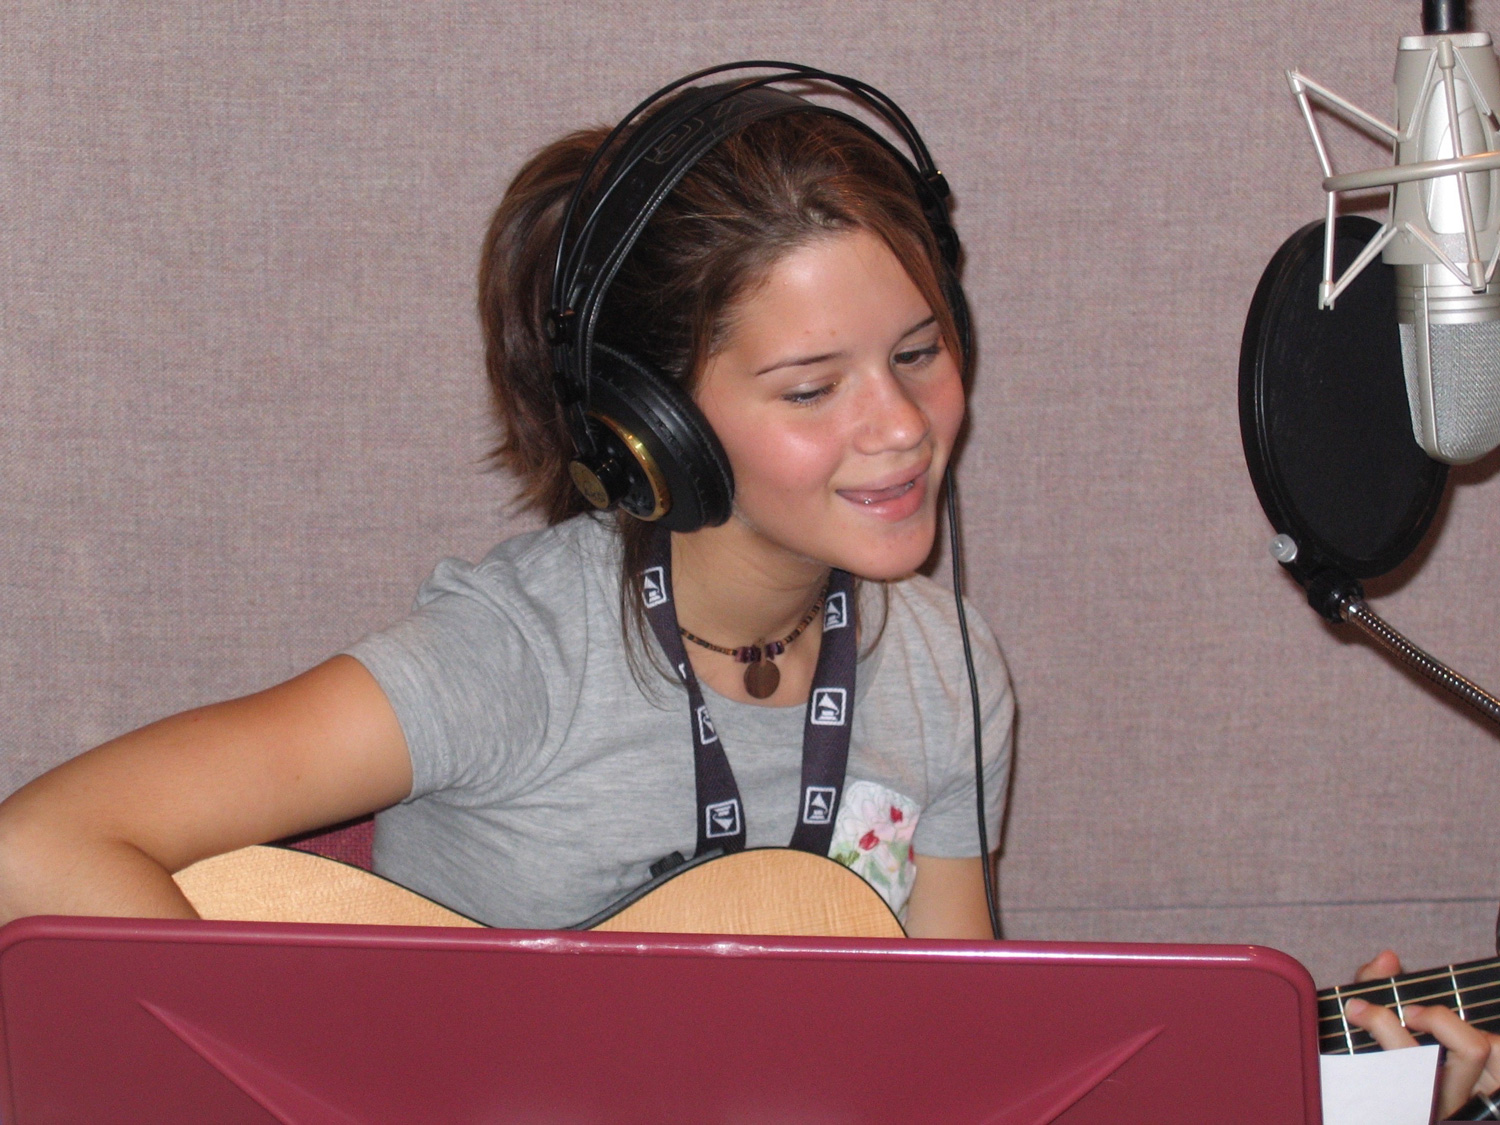 Maren in here element - the recording studio